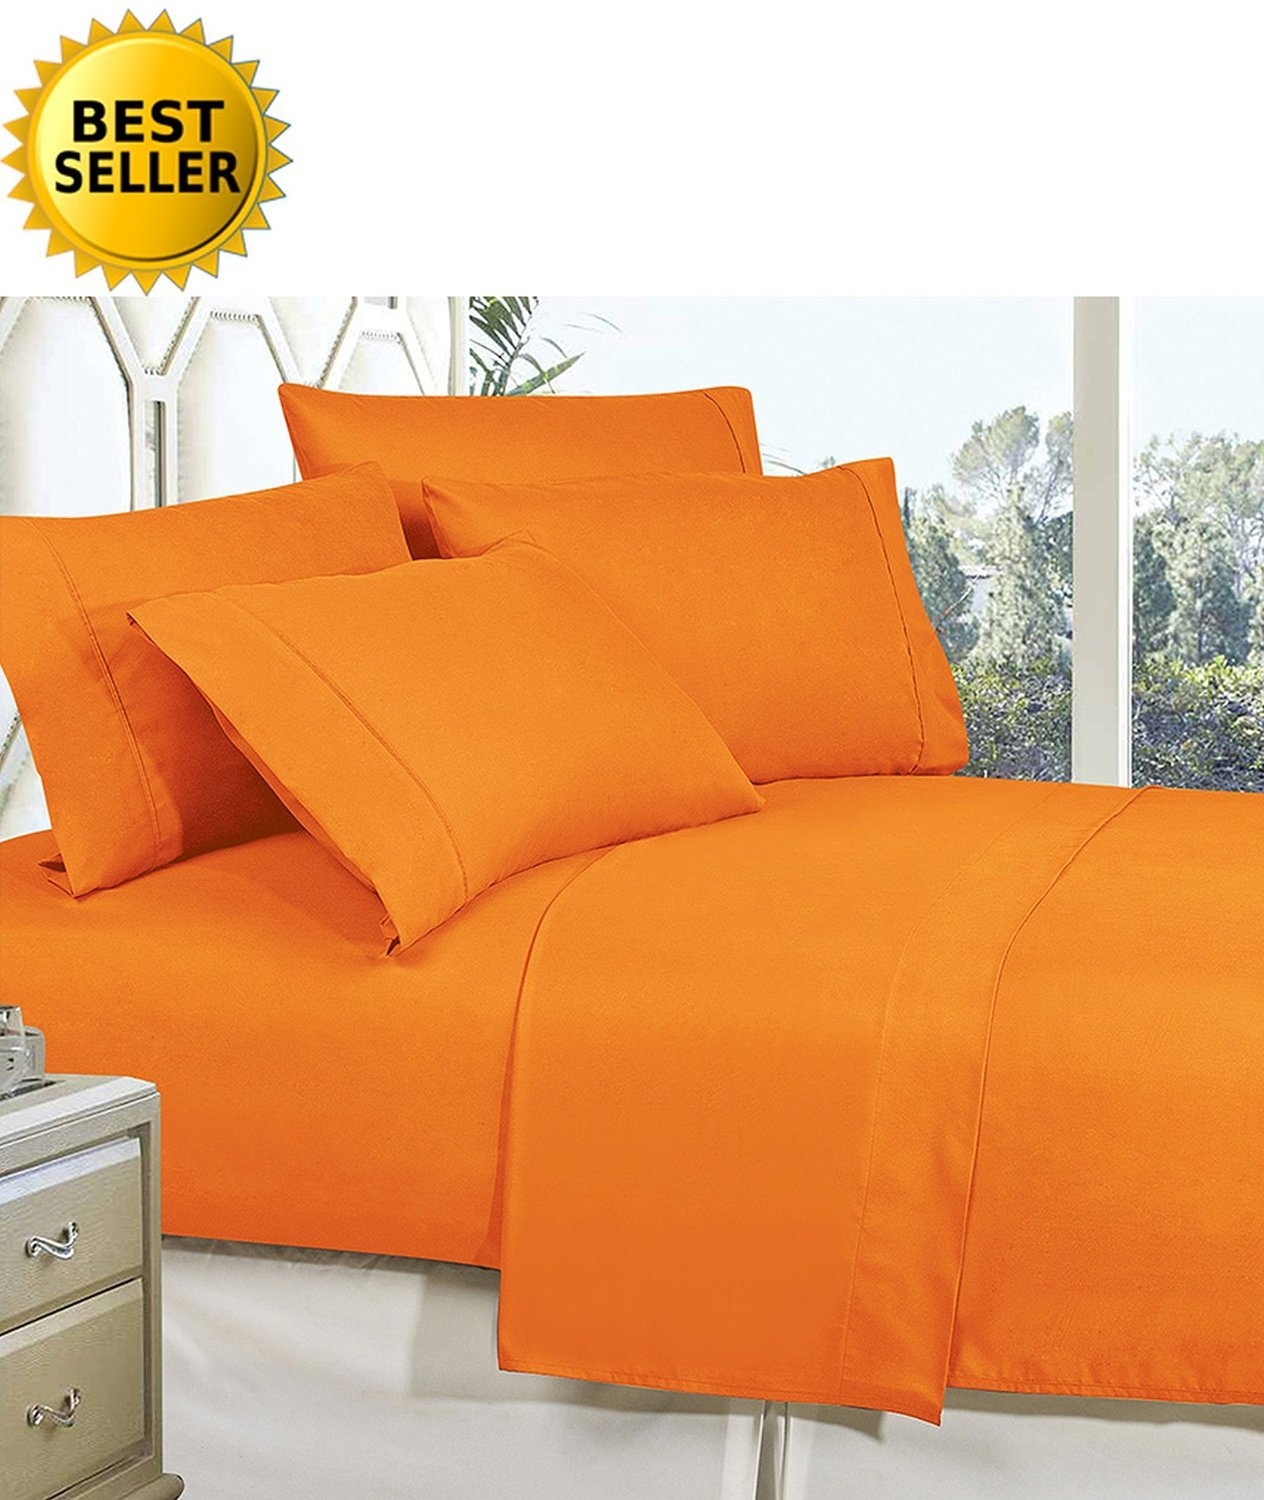 Mattrest Luxury Silky Soft - Wrinkle Resistant 1500 Thread Count Egyptian Queen Orange